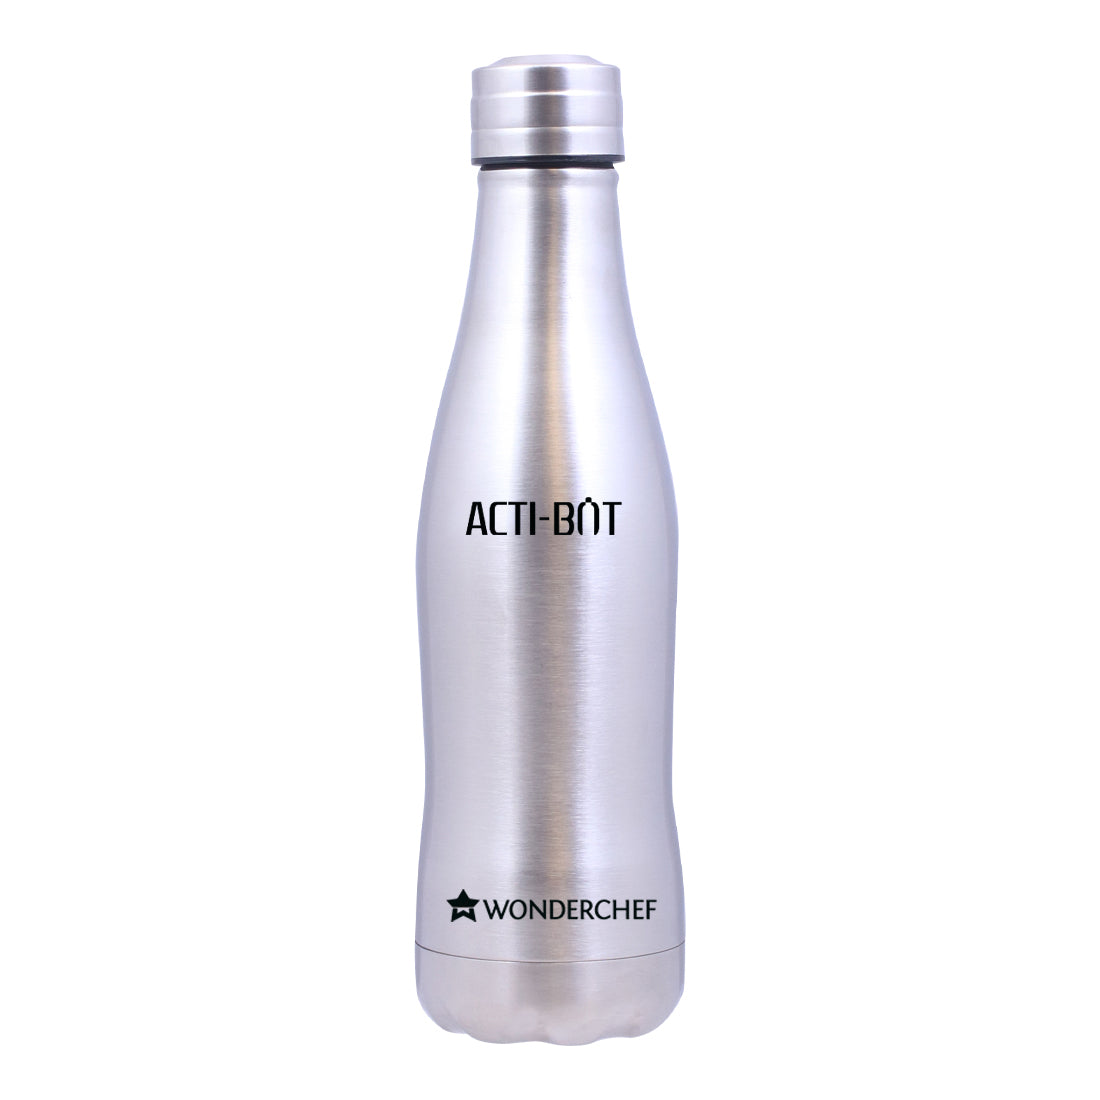 Acti-Bot Stainless Steel Single Wall Water Bottle, 900ml